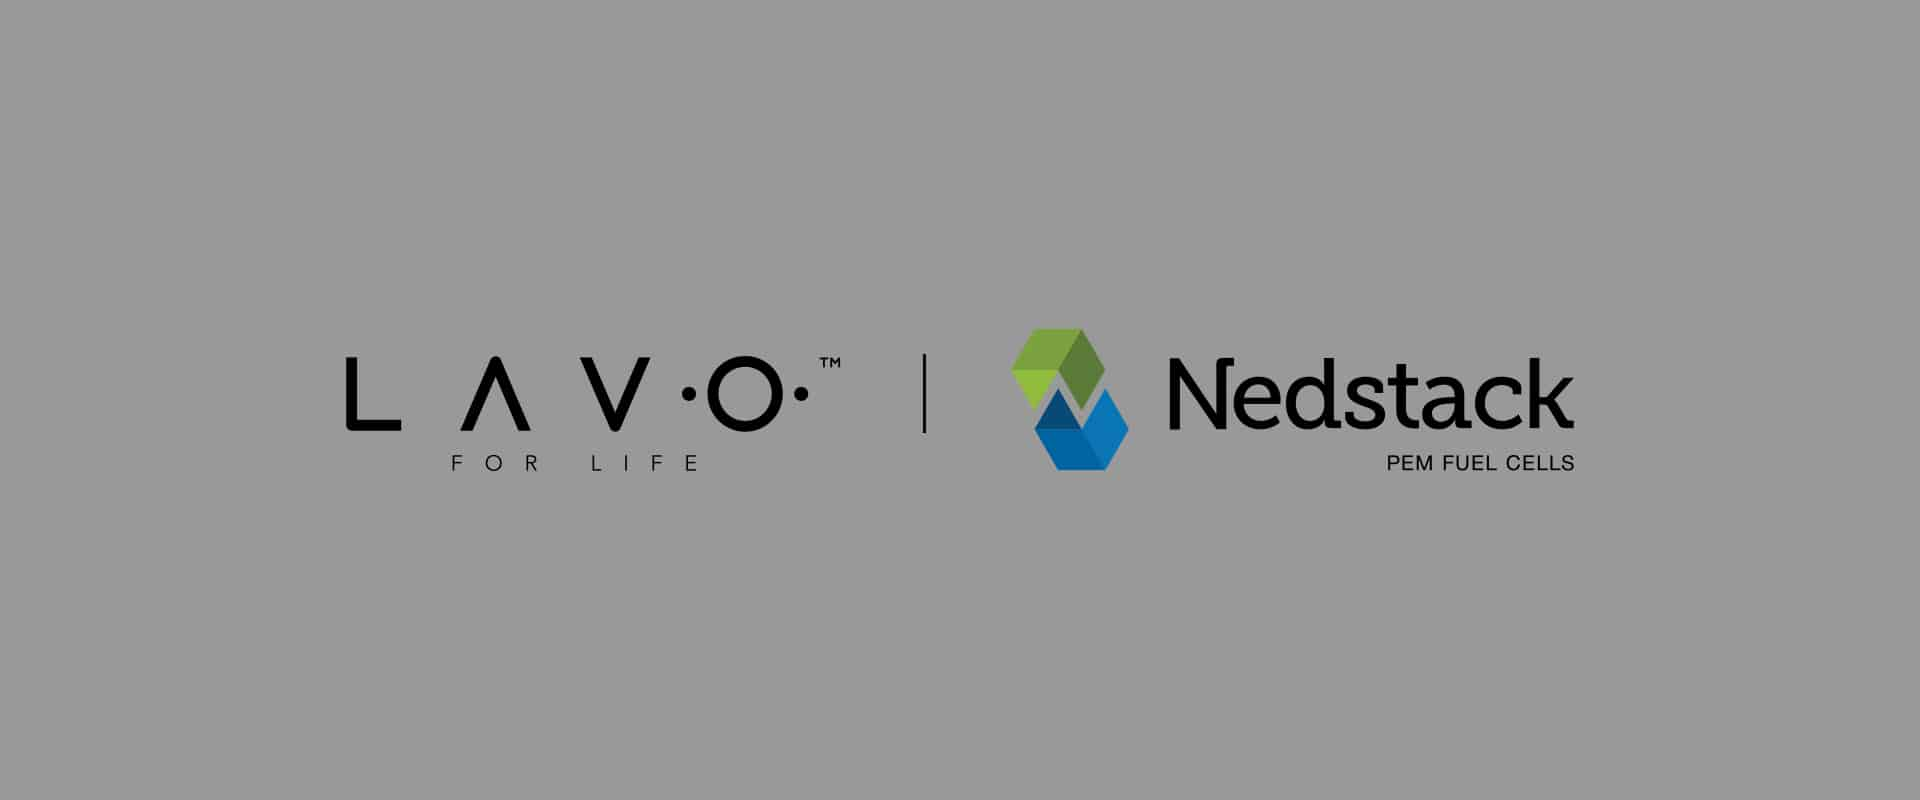 LAVO™ and Nedstack have taken a first step in localising manufacturing hydrogen fuel cells in Australia